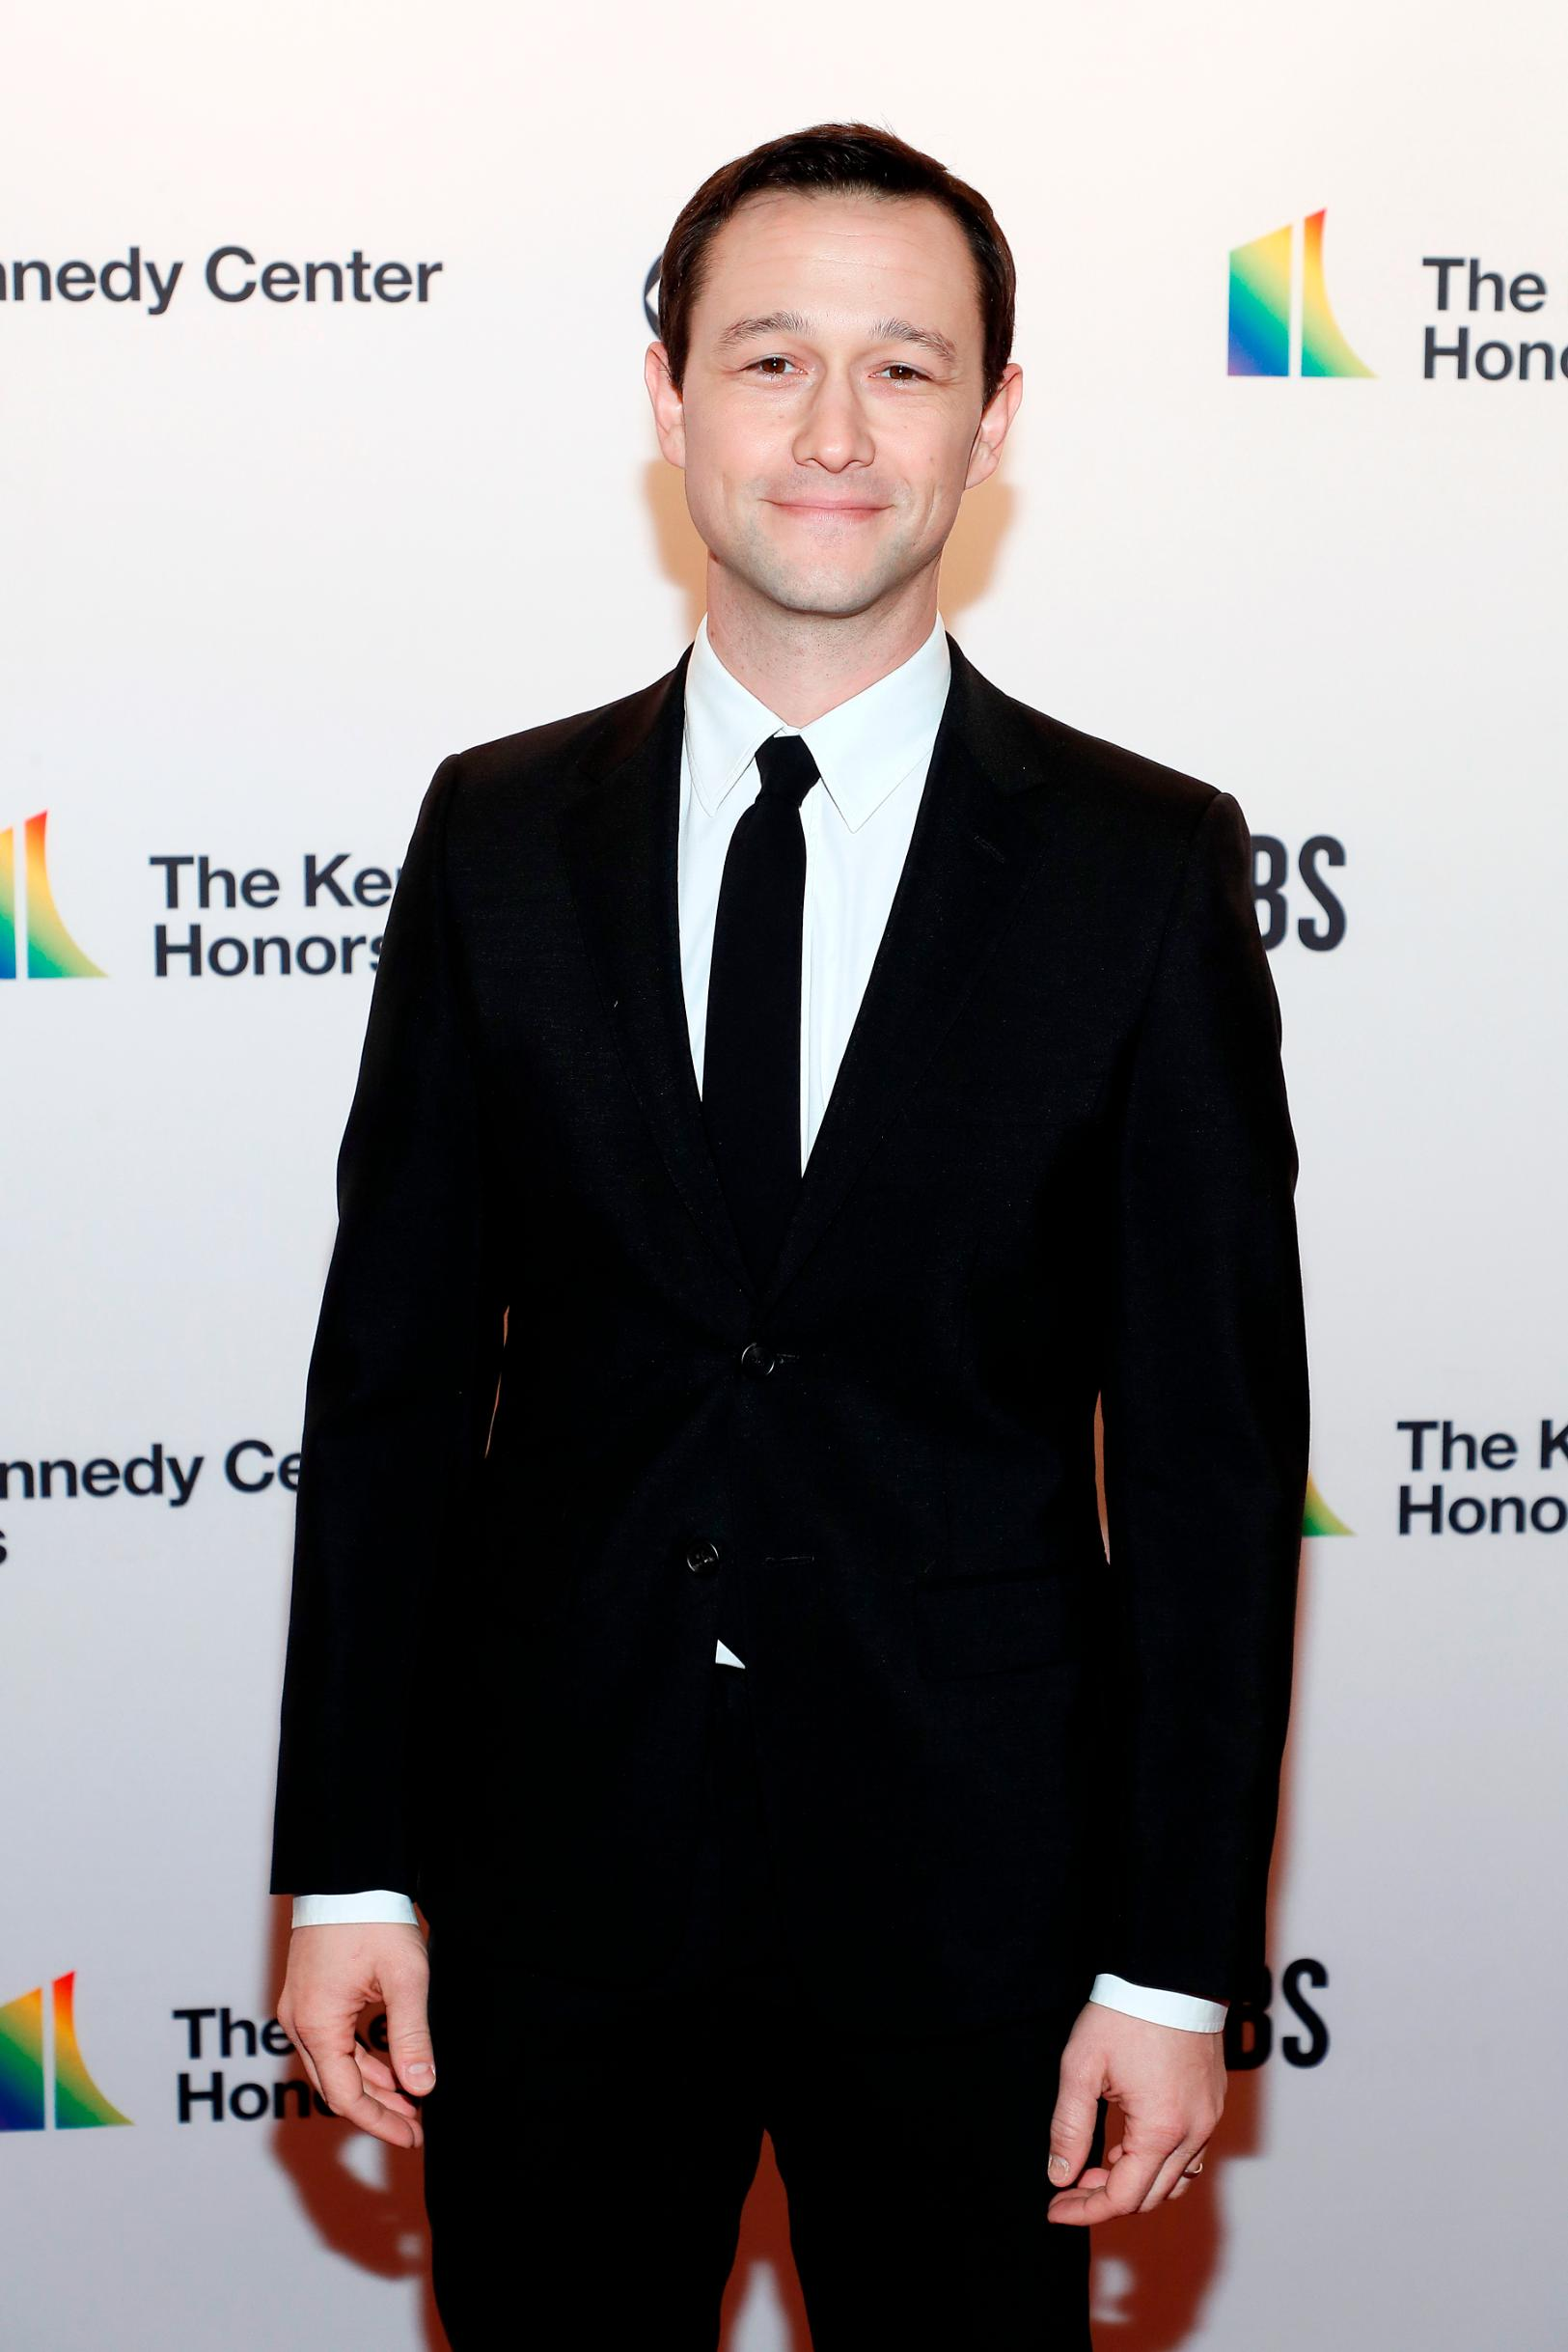 Joseph Gordon-Levitt wants to hear your coronavirus stories